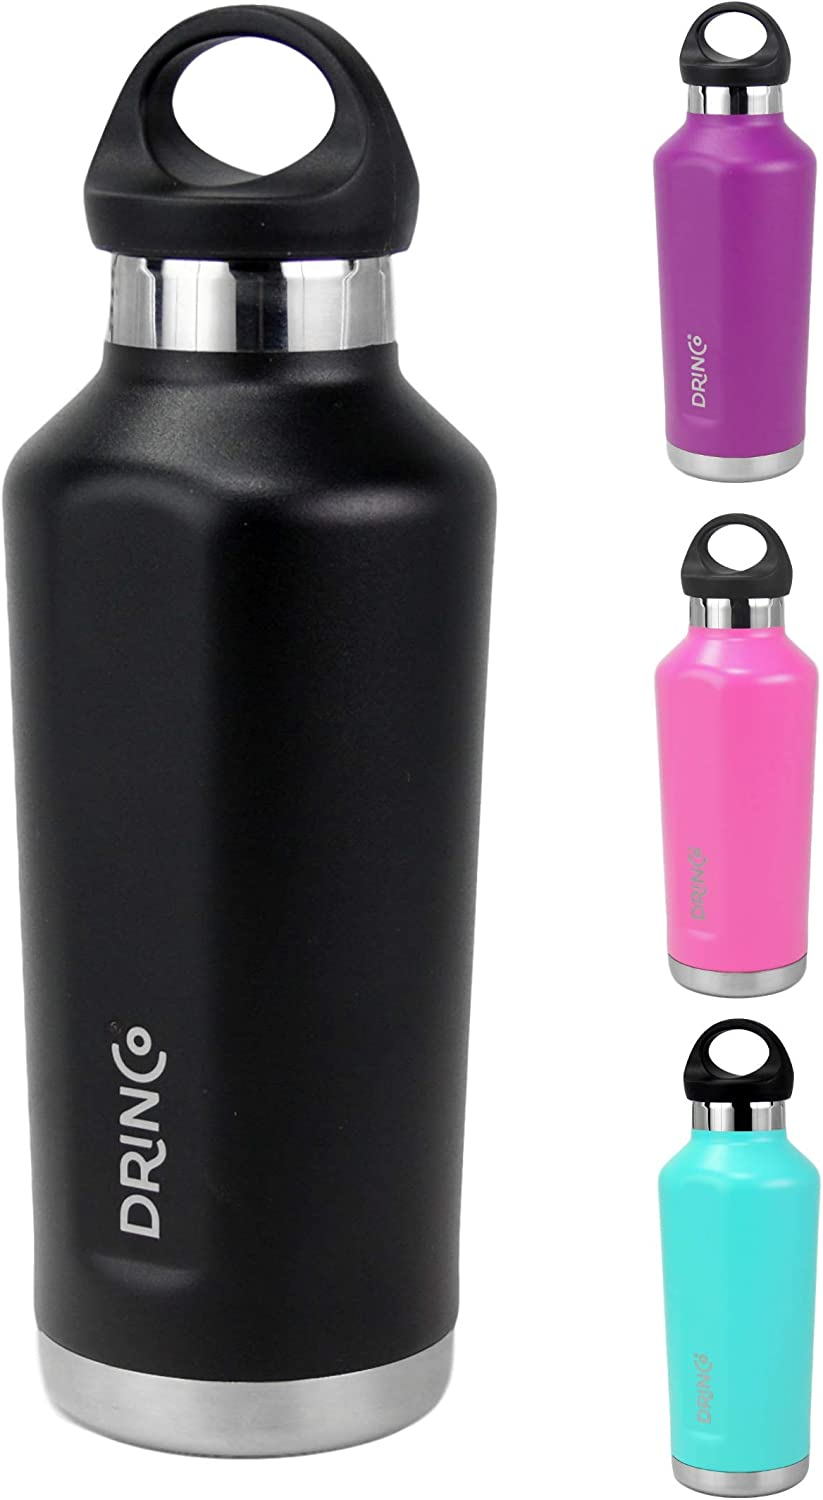 Drinco stainless steel water bottle insulated water bottle| Canteen | Loop Cap | Double Wall | Wide Mouth | Triple Insulated | Powder Coated Durability |18/8 Grade | 17oz (Black, 17oz Canteen)